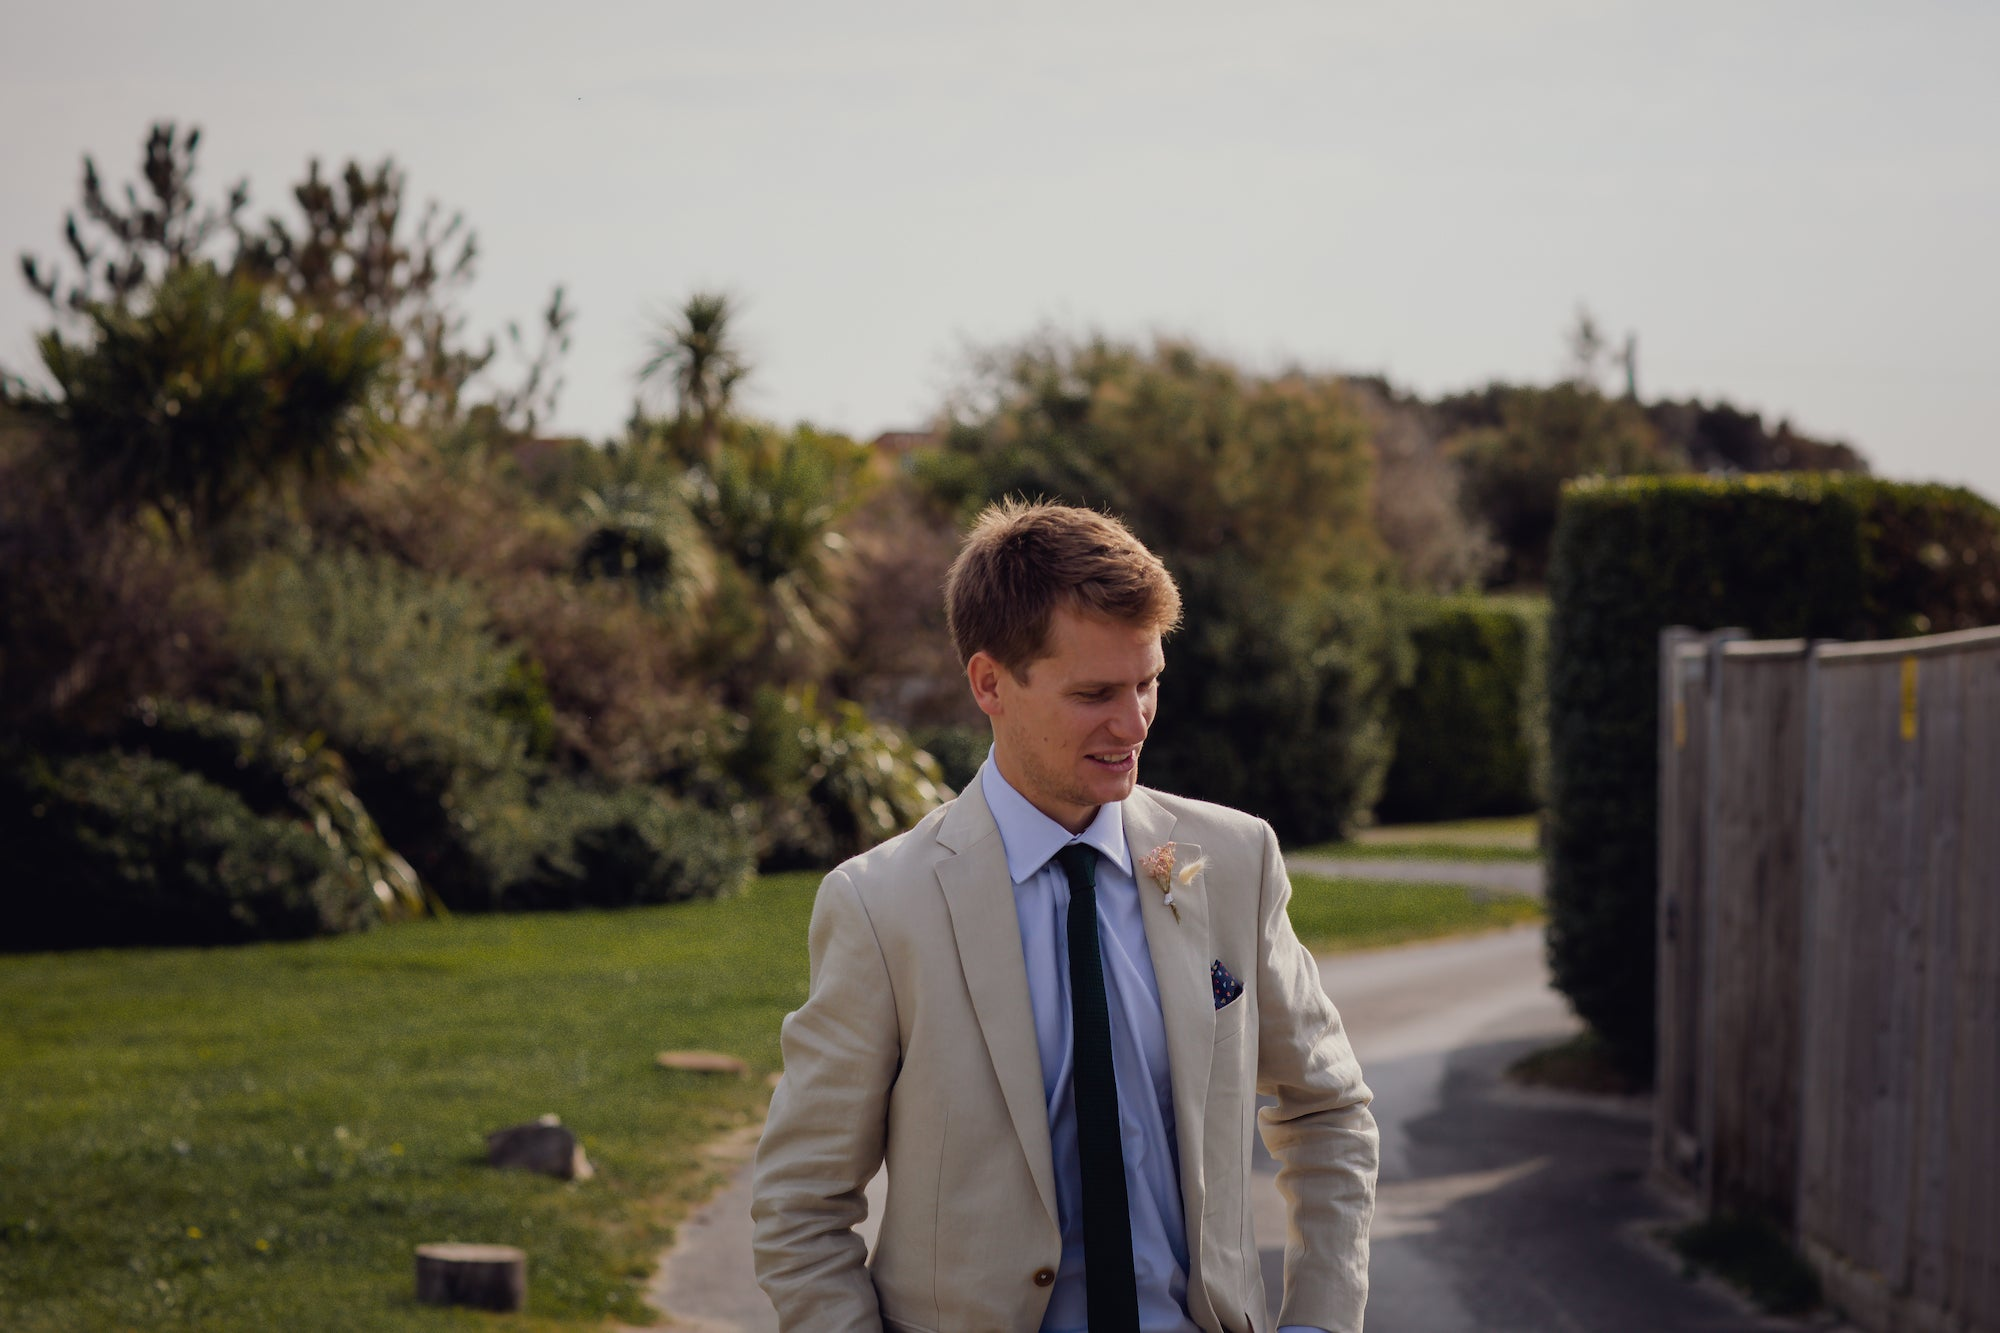 Linen suit for a wedding